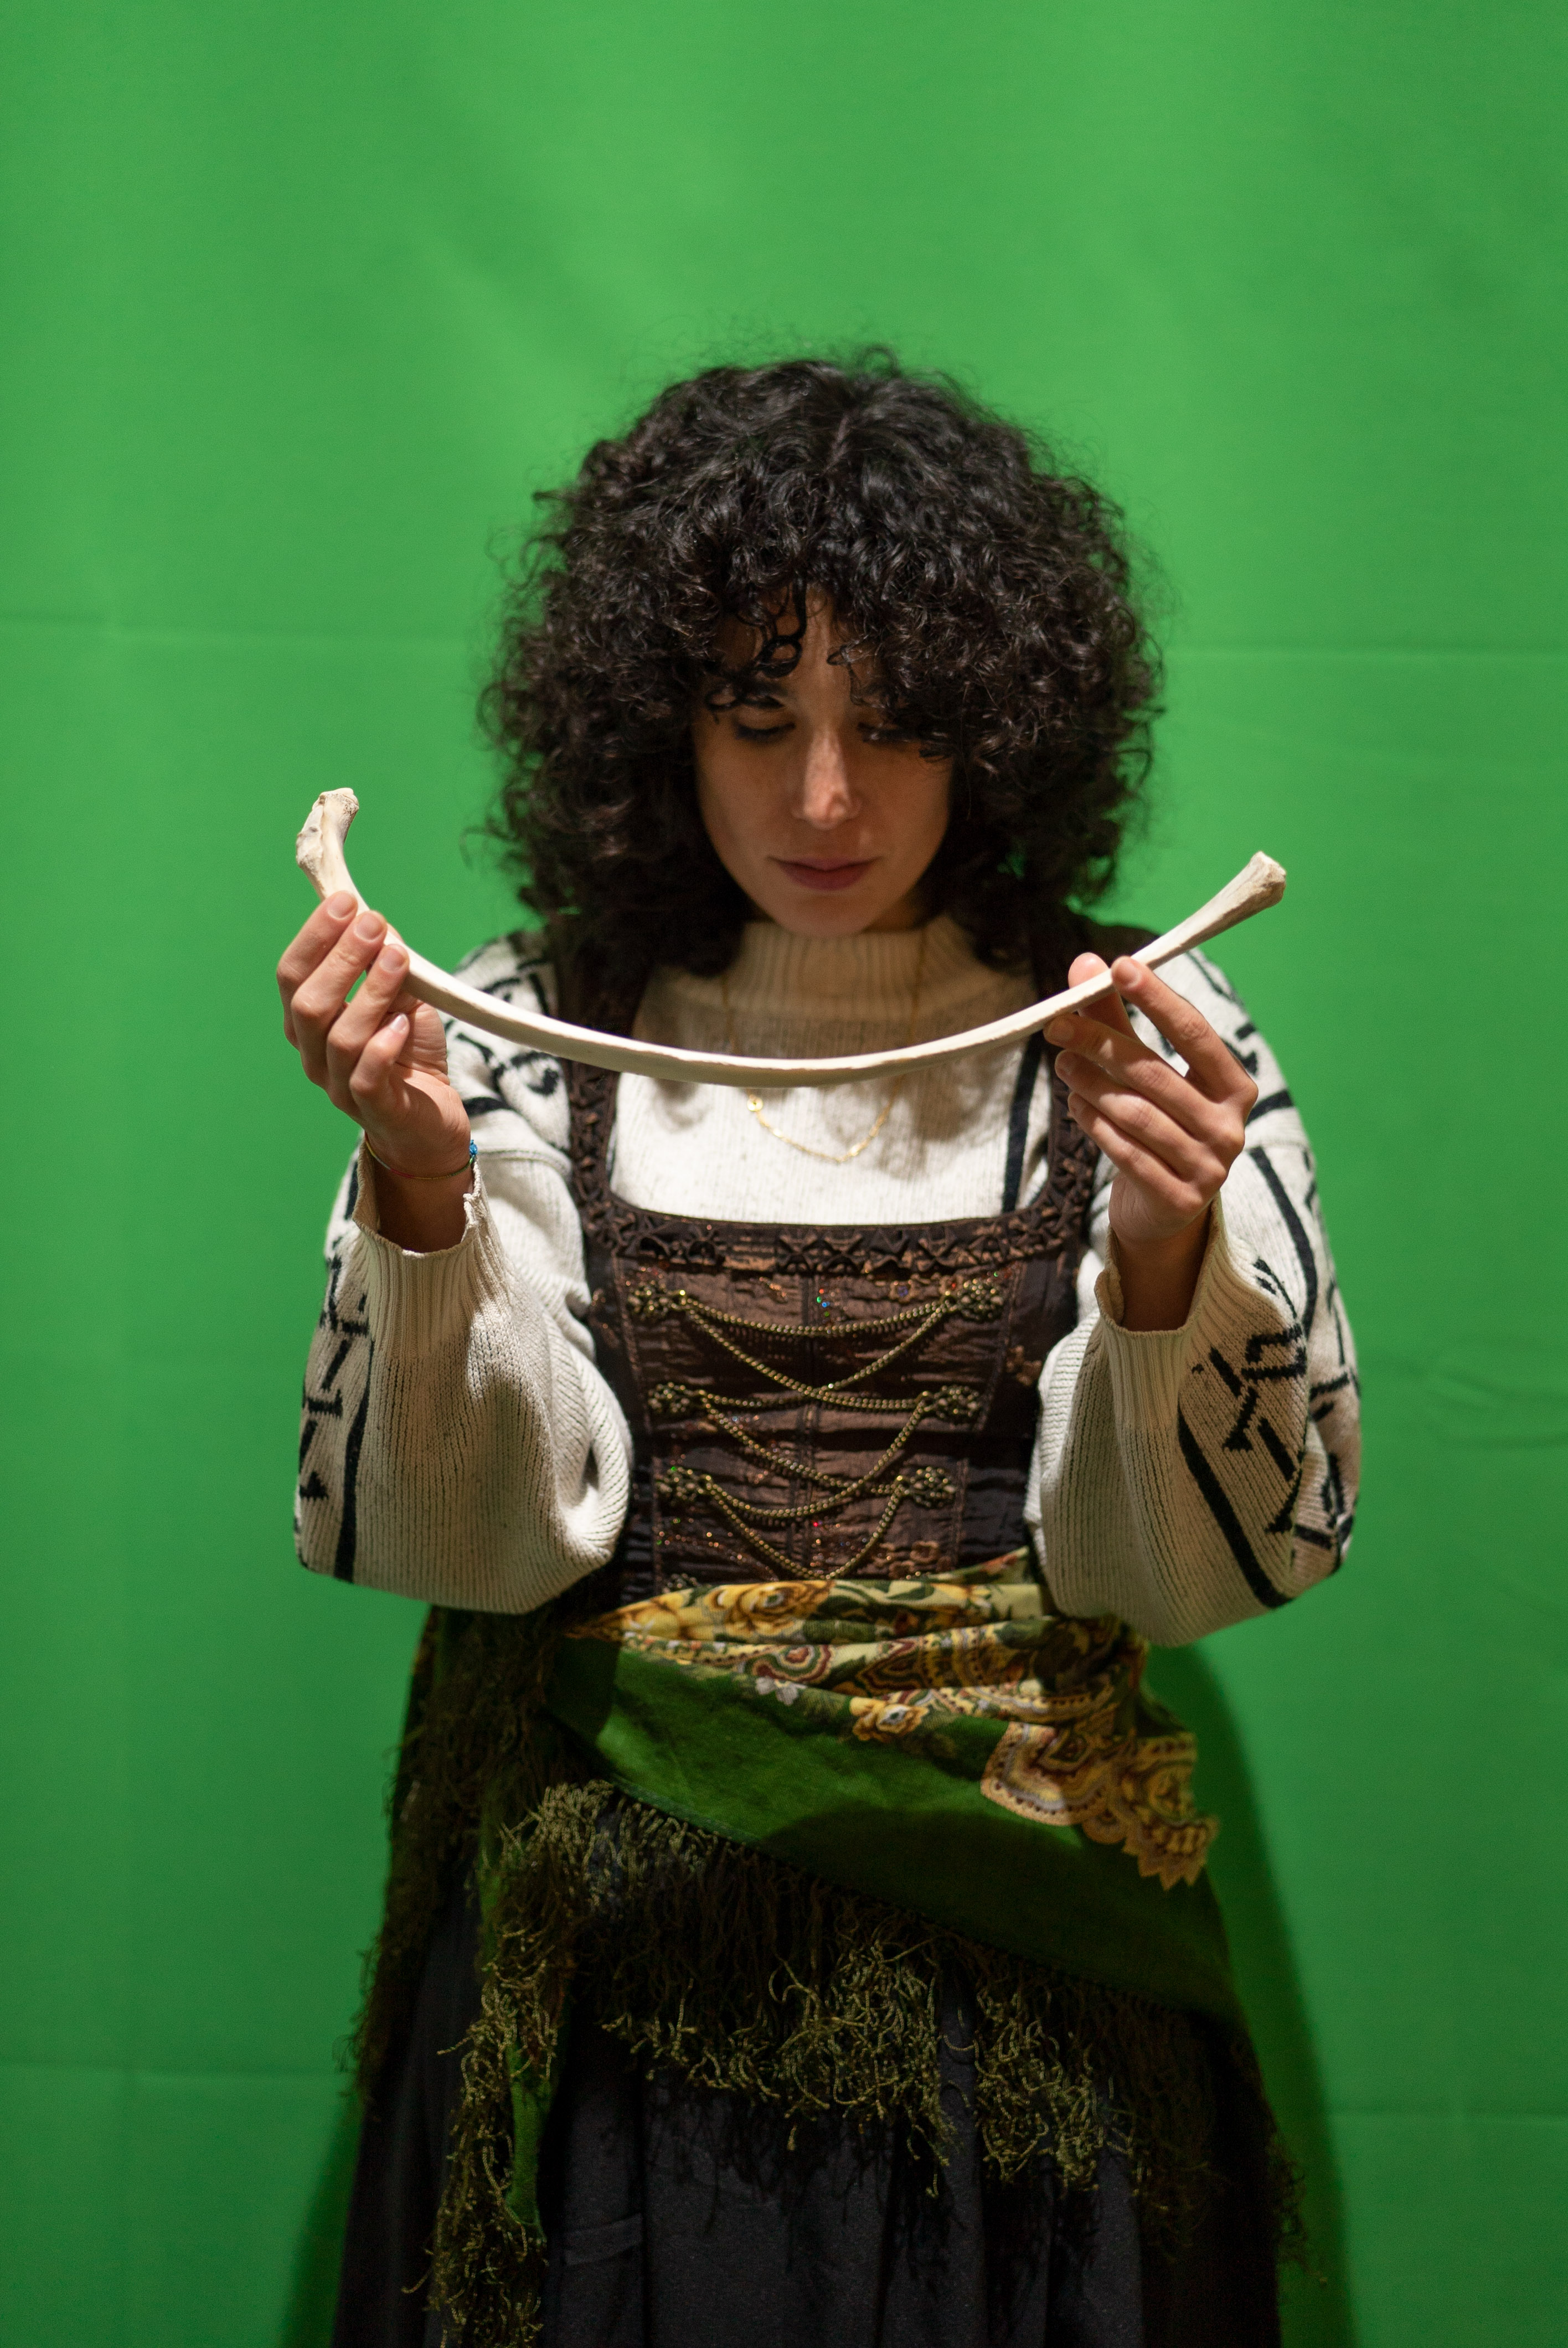 The photo is a medium shot of a person in front of a green screen. They have black curls, wear a wool sweater and over it a traditional costume dress with a scarf around their hips. With their hands they hold a 40cm long bone in front of their face. Their head is lowered and their eyes are directed to the ground.